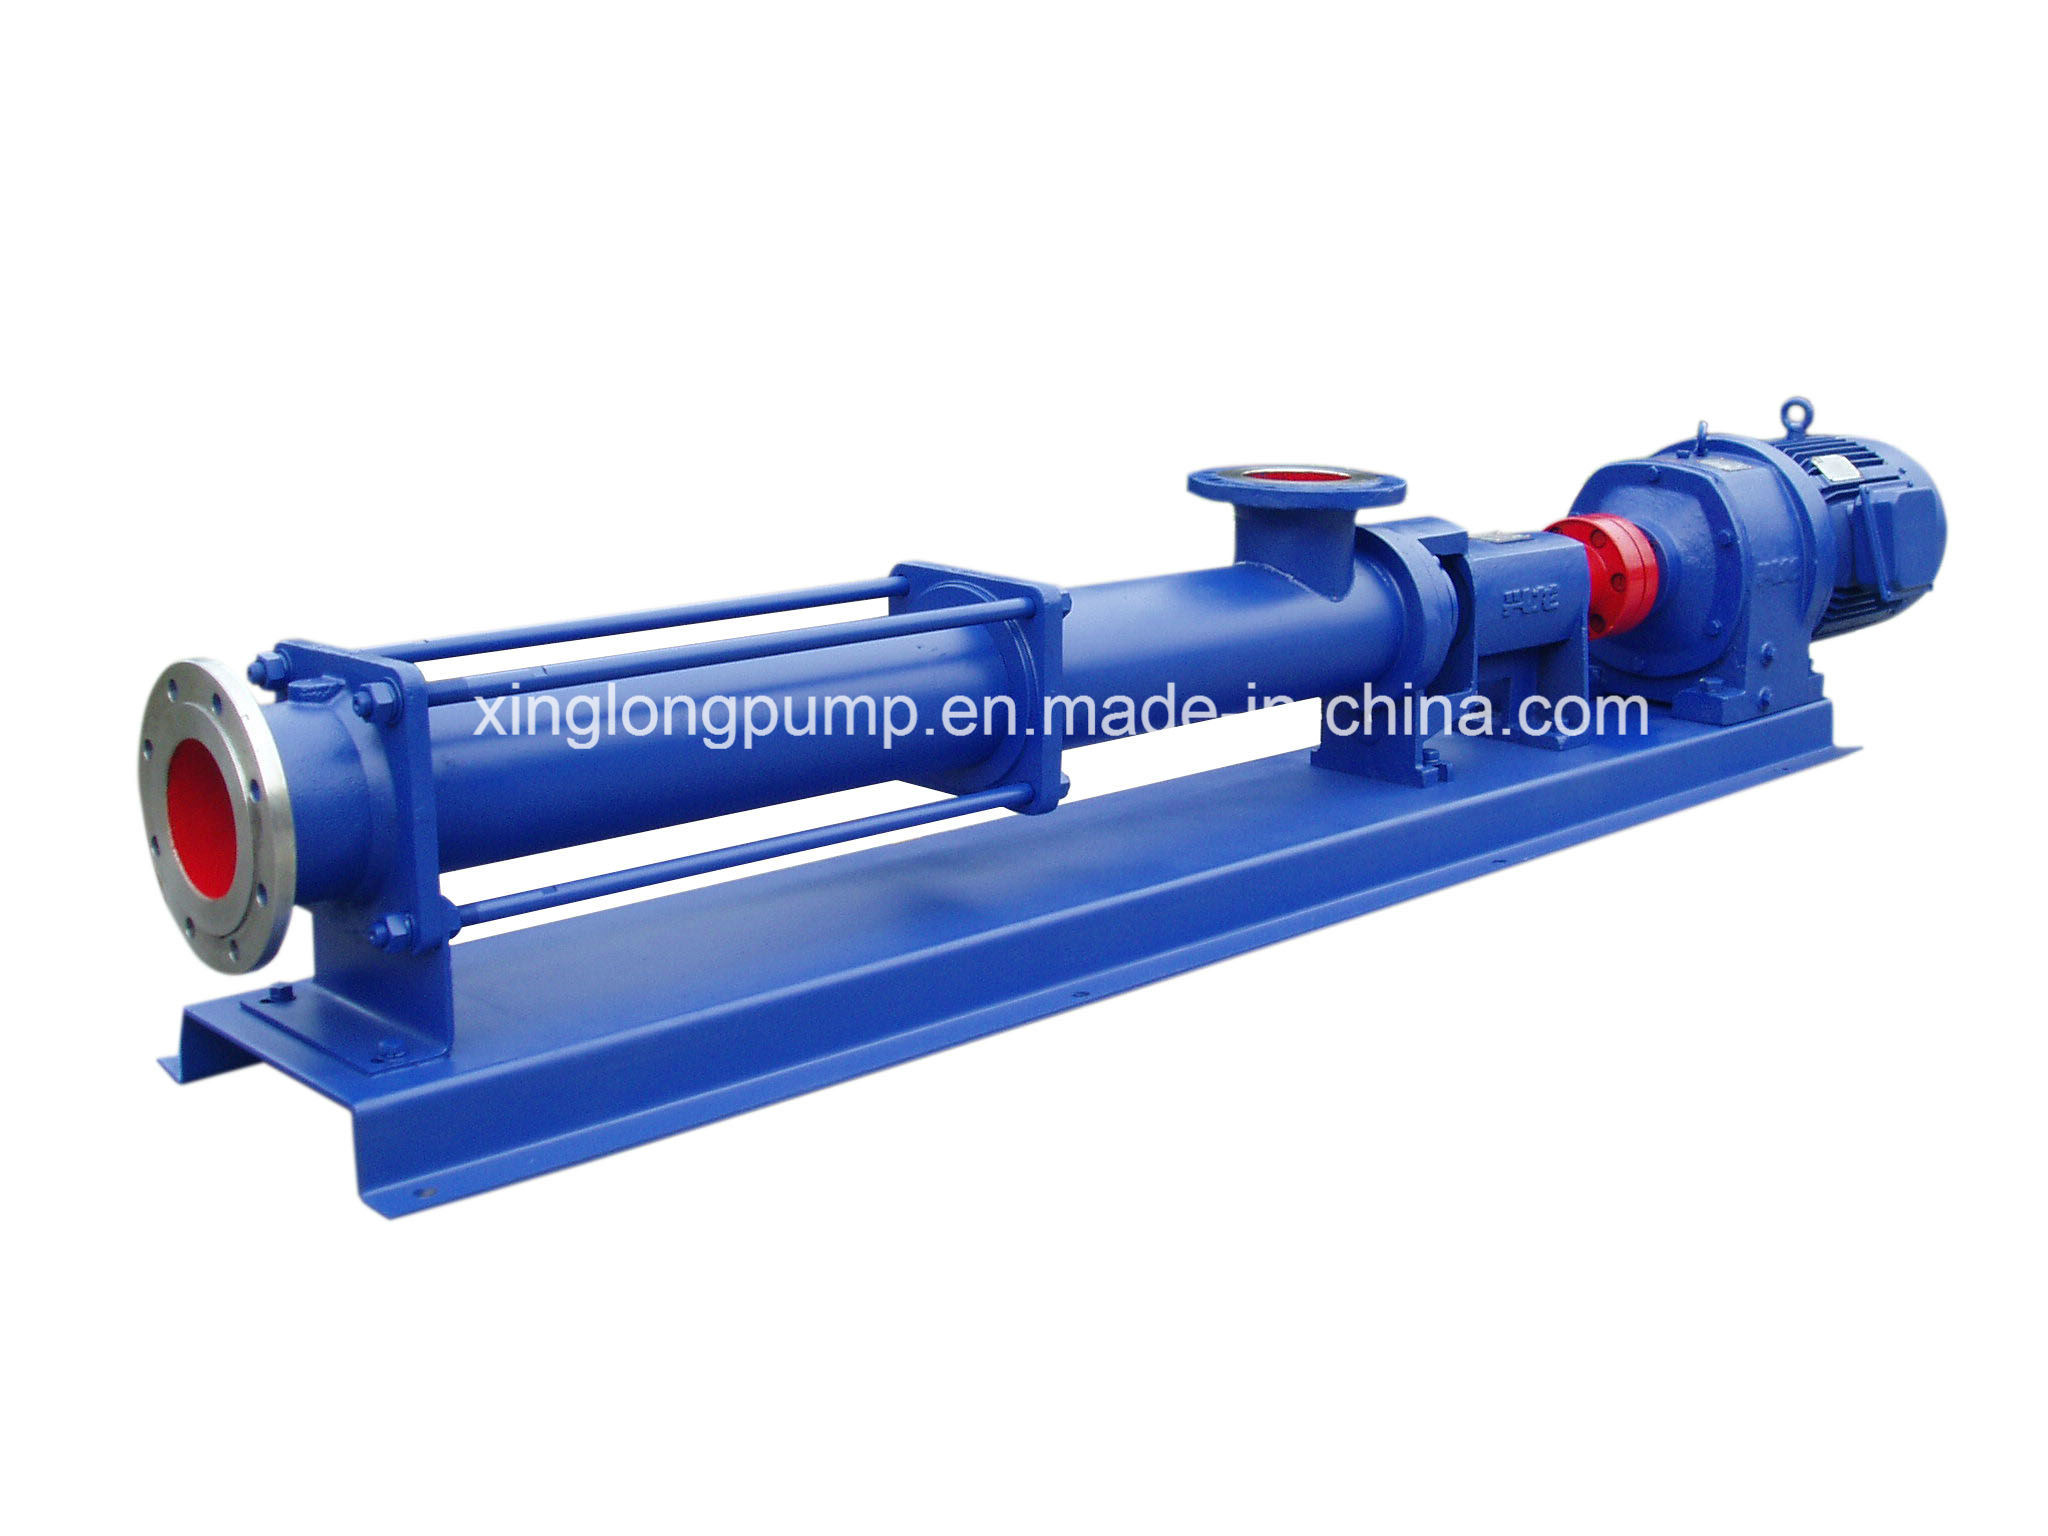 Xinglong Xg-Series Progressive Cavity Eccentric Screw Pumps